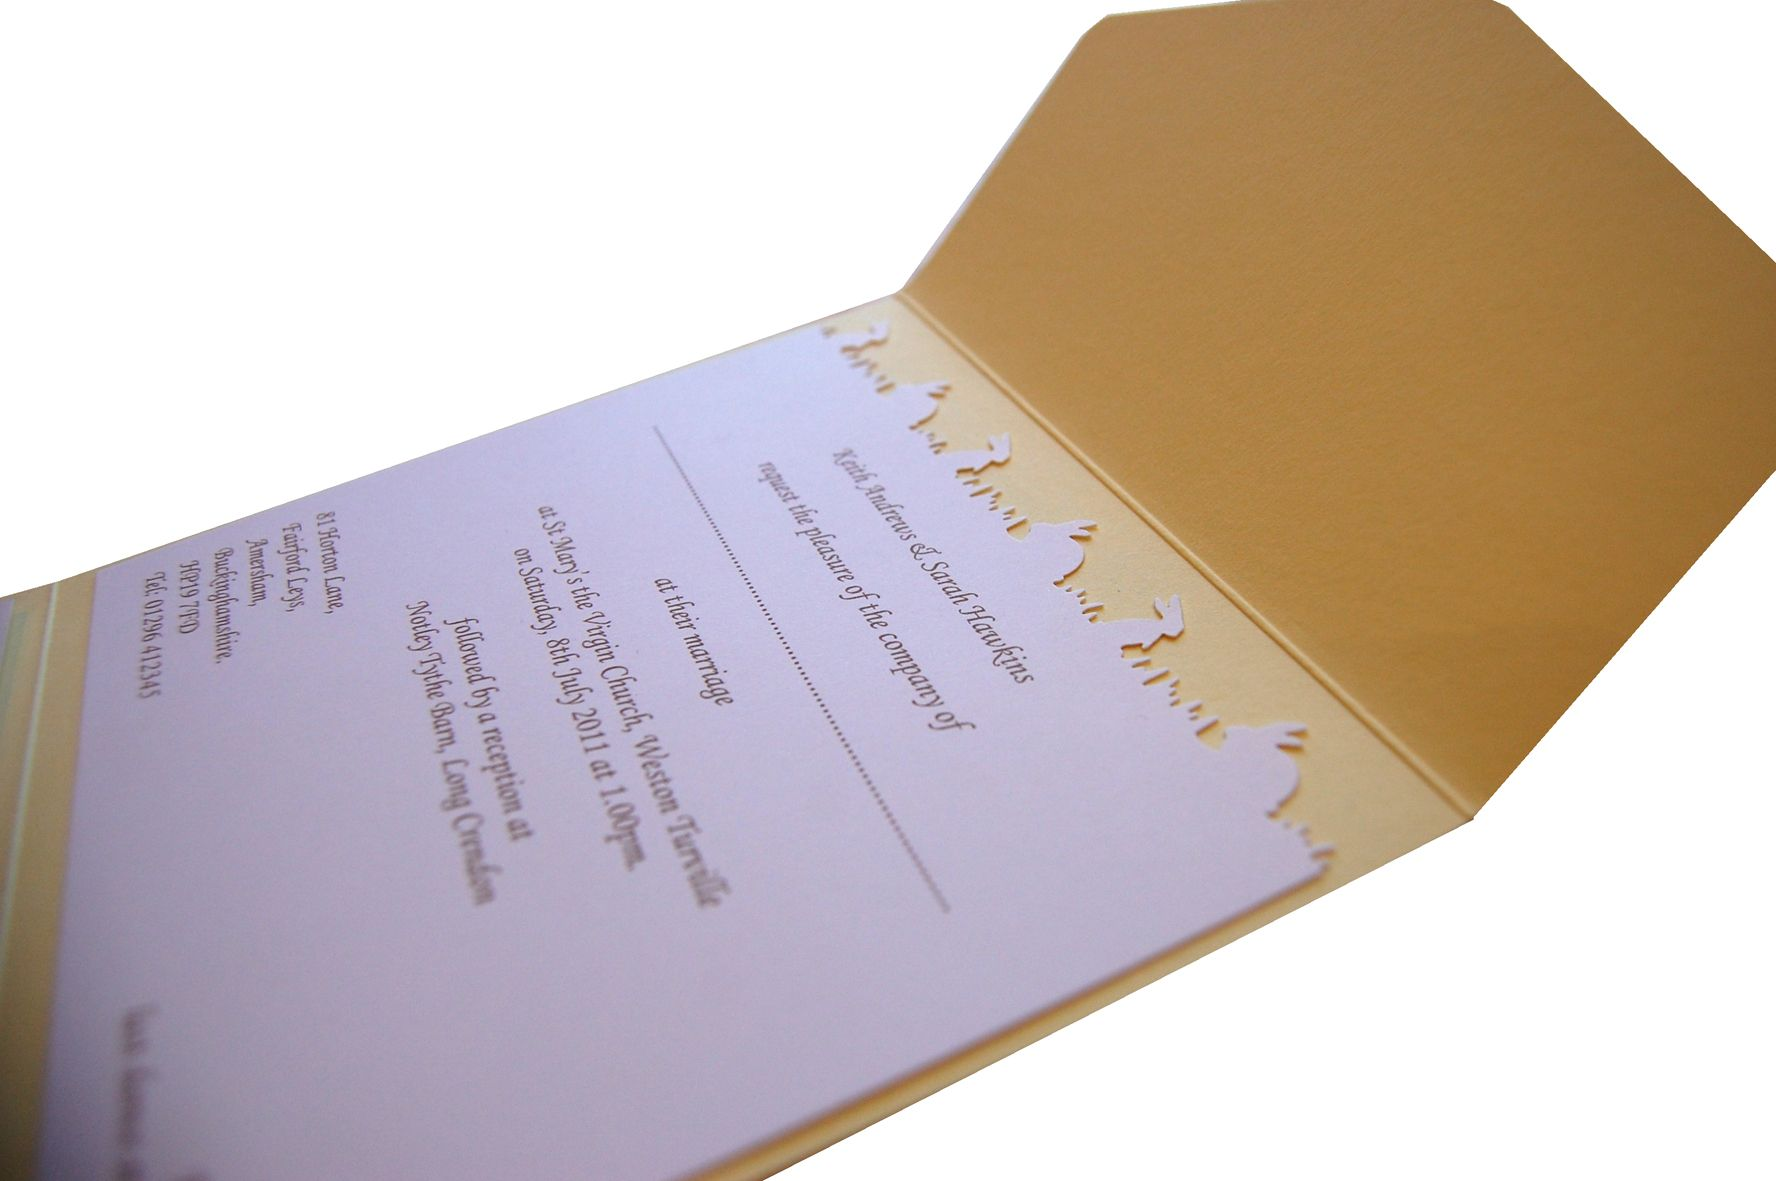 wedding stationery packages uk%0A yellow bunny pocket invitation www sewunique co uk